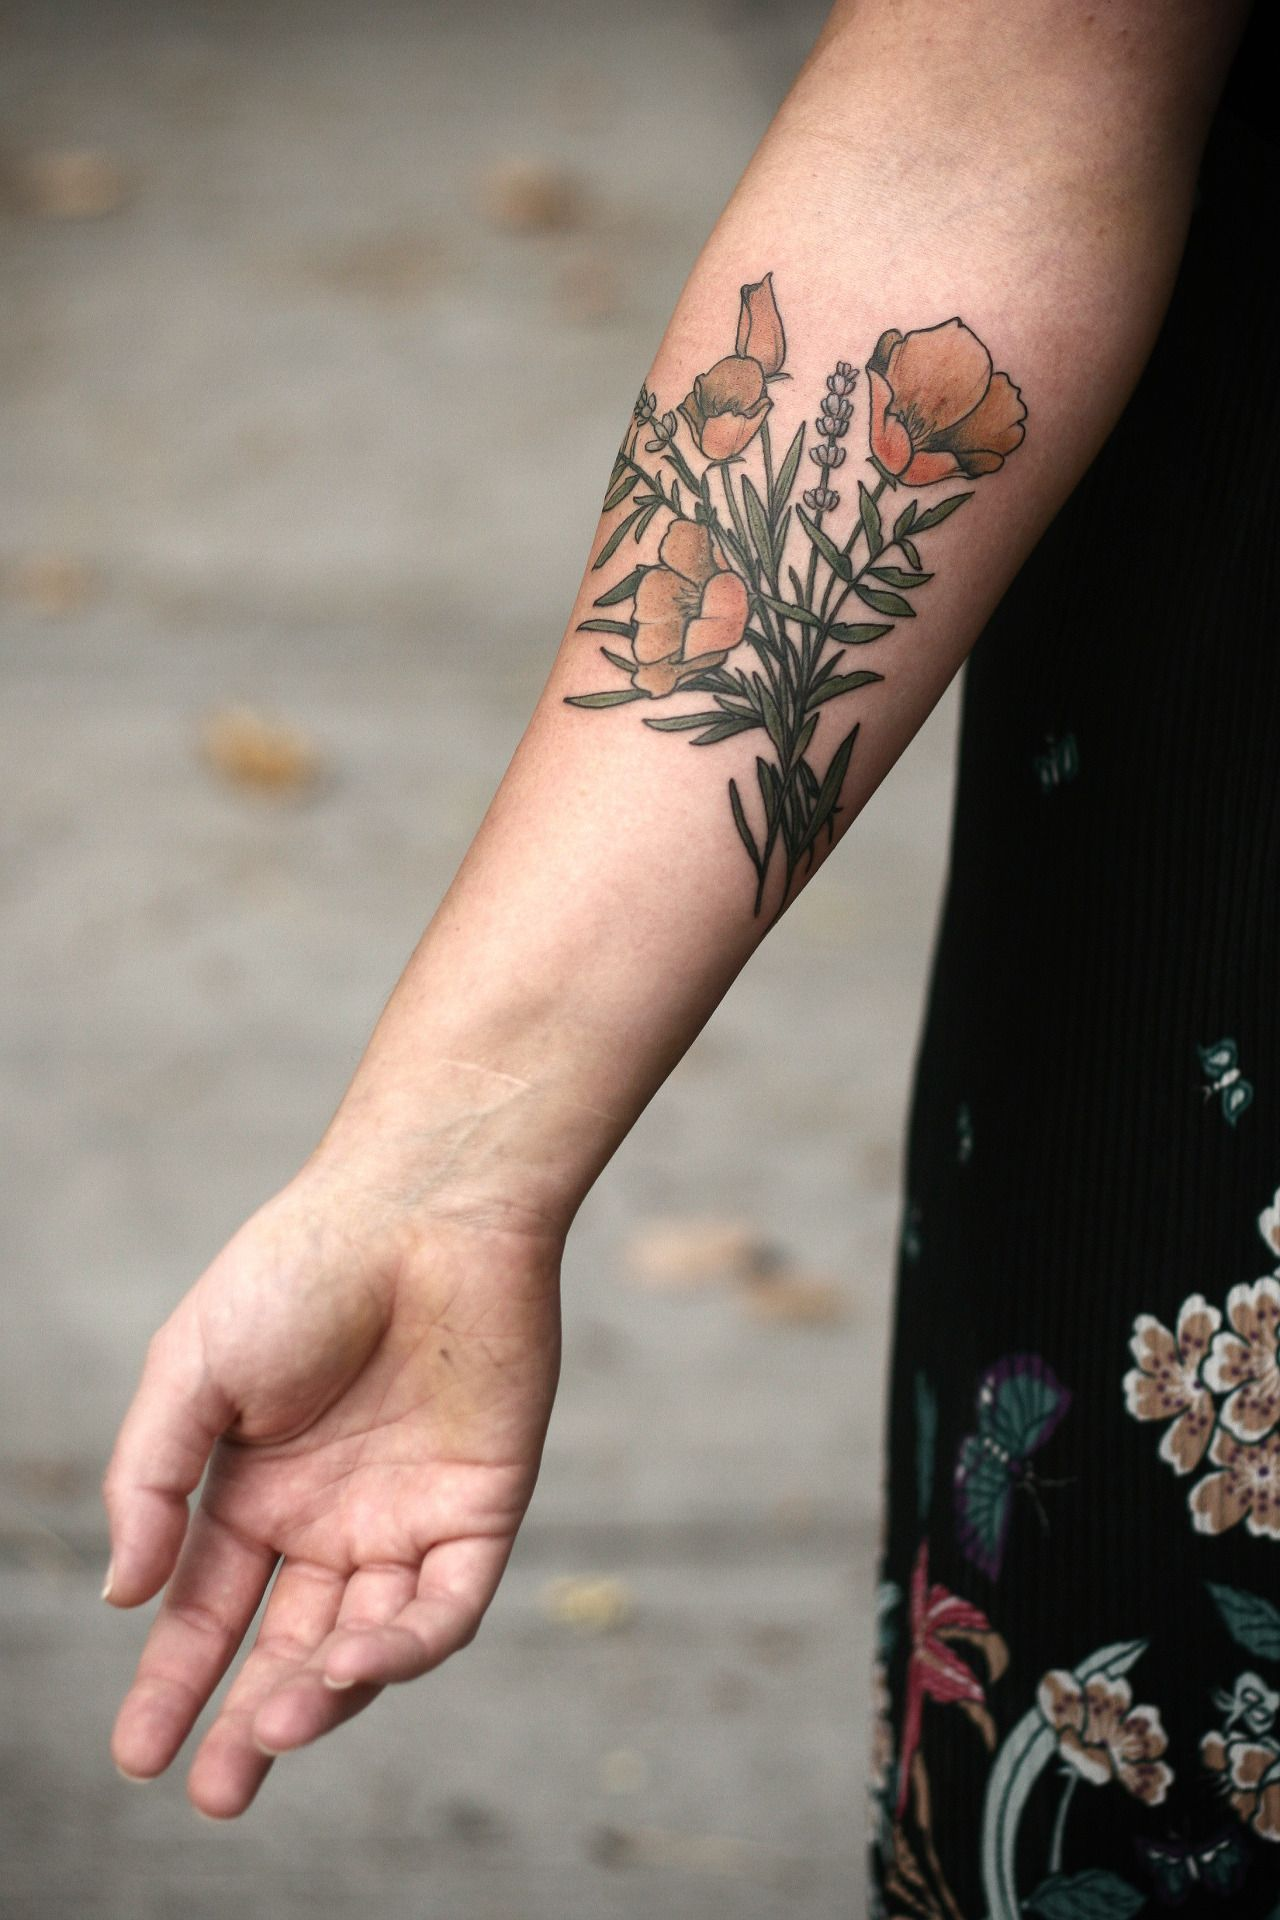 Lavender And California Poppies Imahe Is Permanent But The